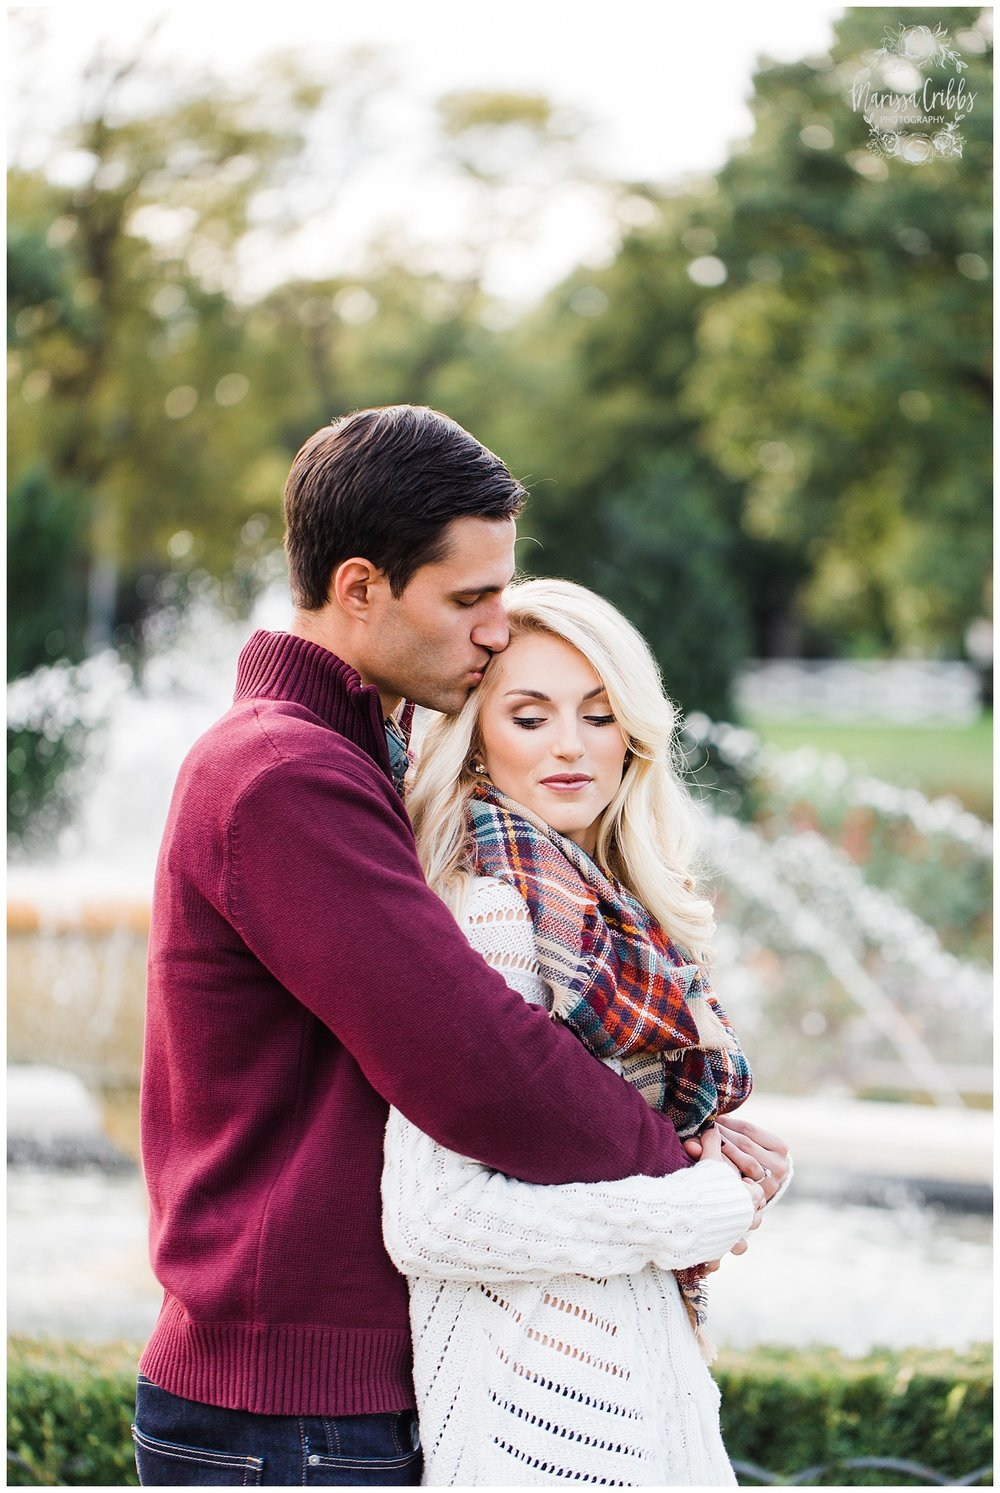 CLOE & GABE LIBERTY MEMORIAL ENGAGEMENT | MARISSA CRIBBS PHOTOGRAPHY | LOOSE PARK ENGAGEMENT_3456.jpg